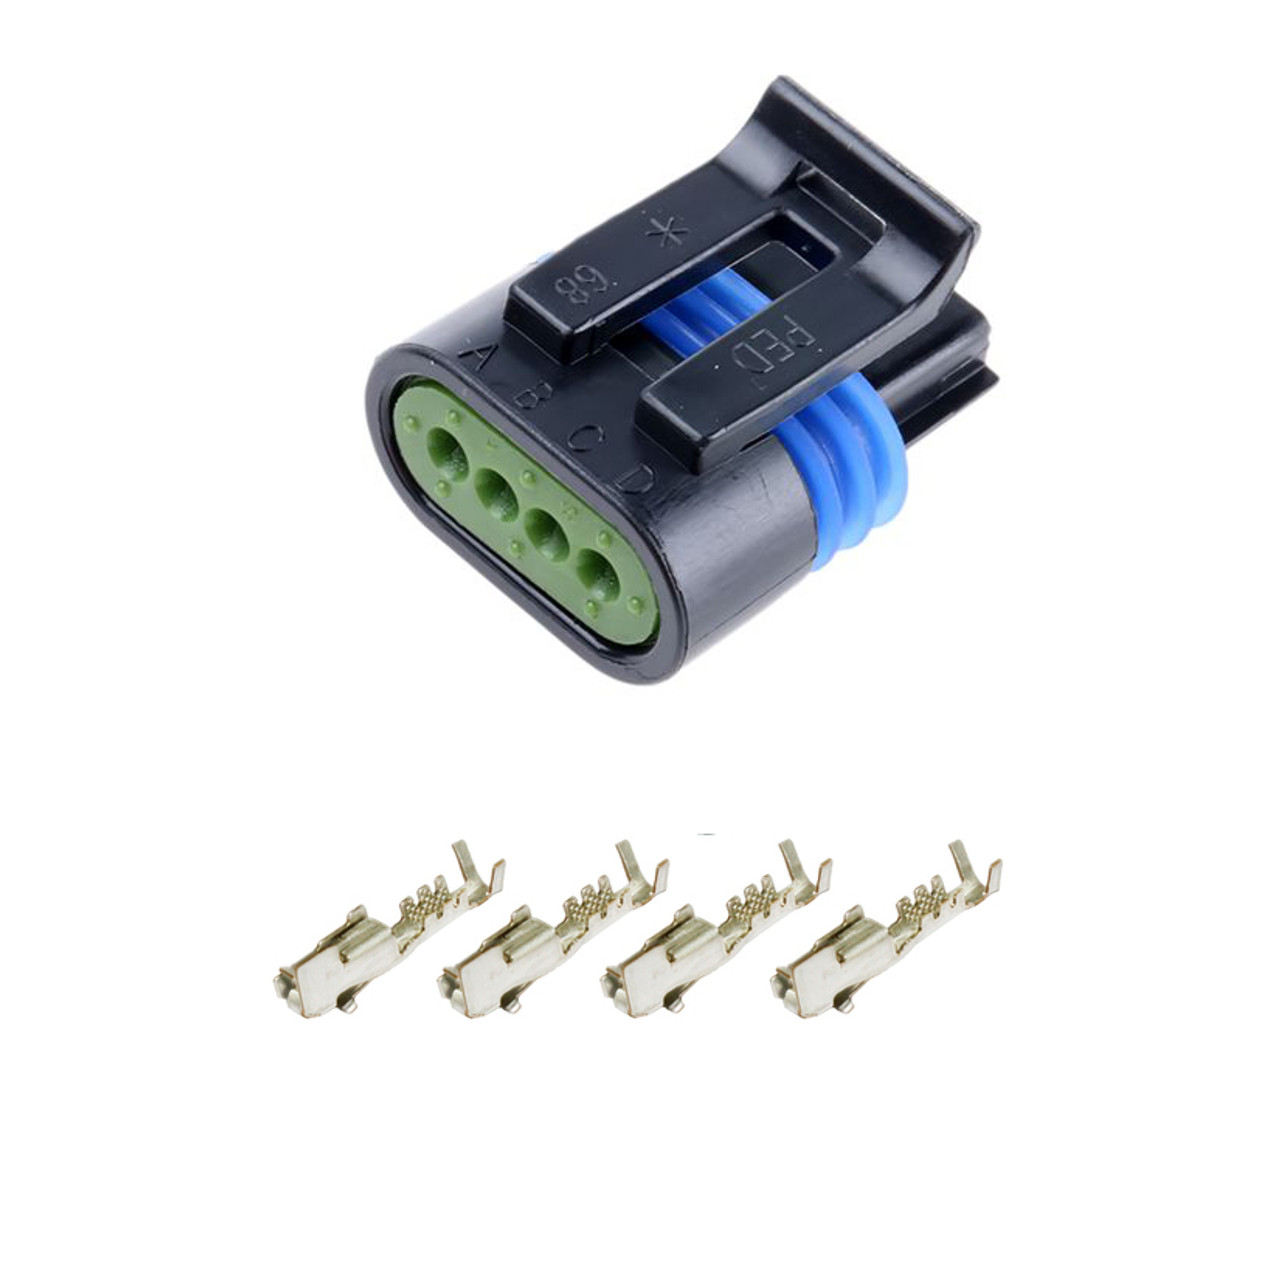 medium resolution of delphi metri pack 150 2 series sealed 4 pin female connector kit obd innovations